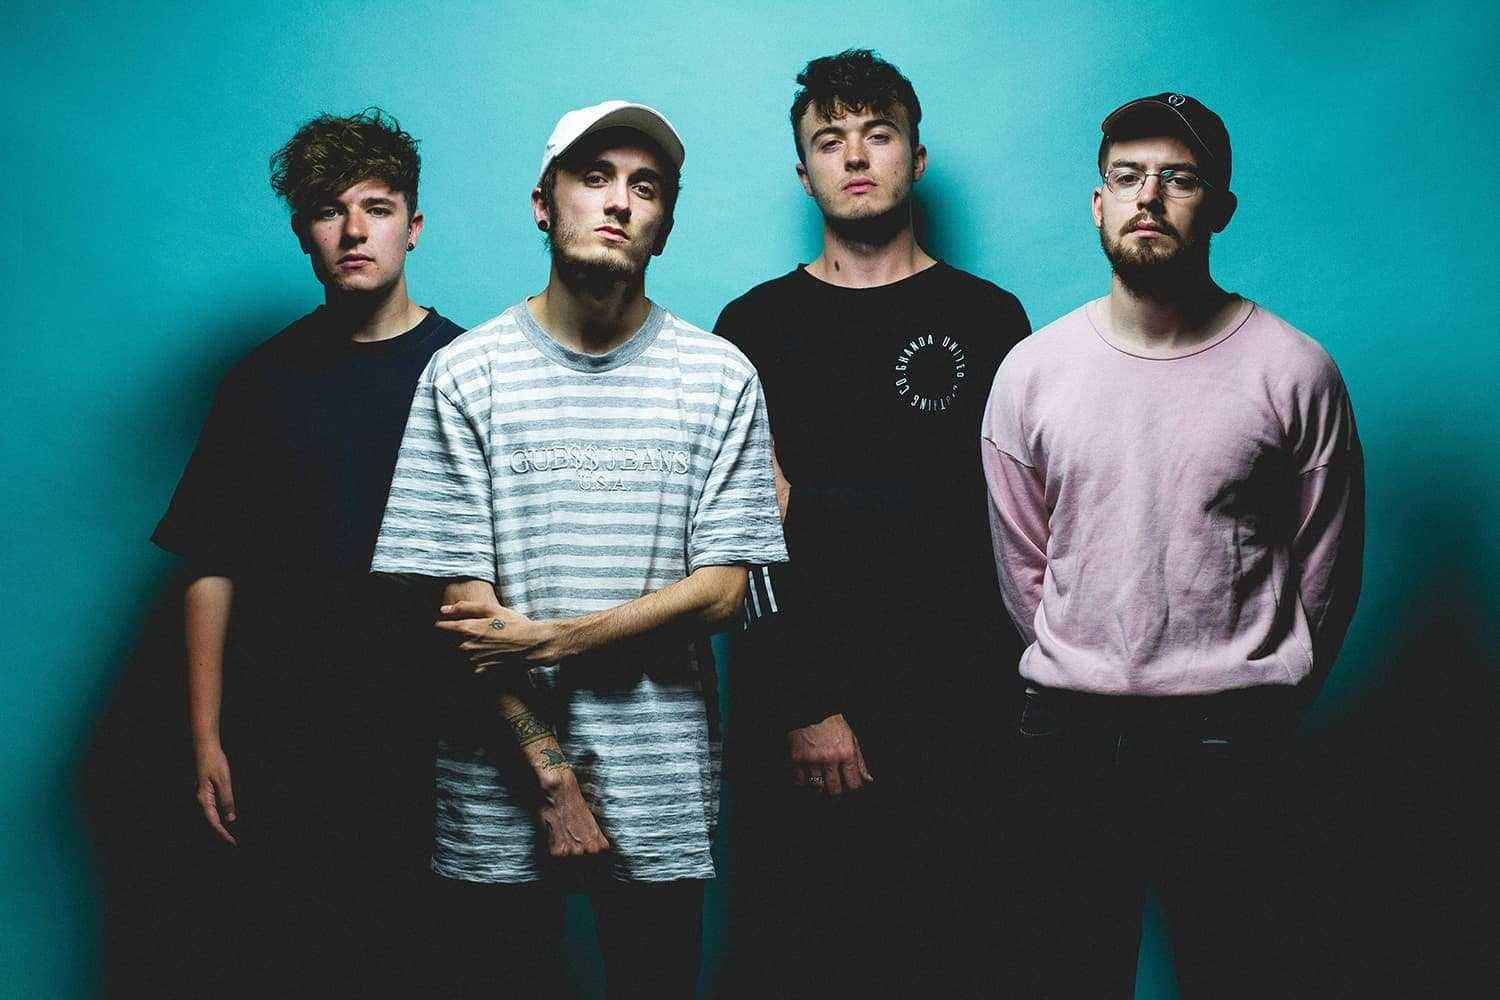 Shaded drop new 'Better With You' video, announce UK tour